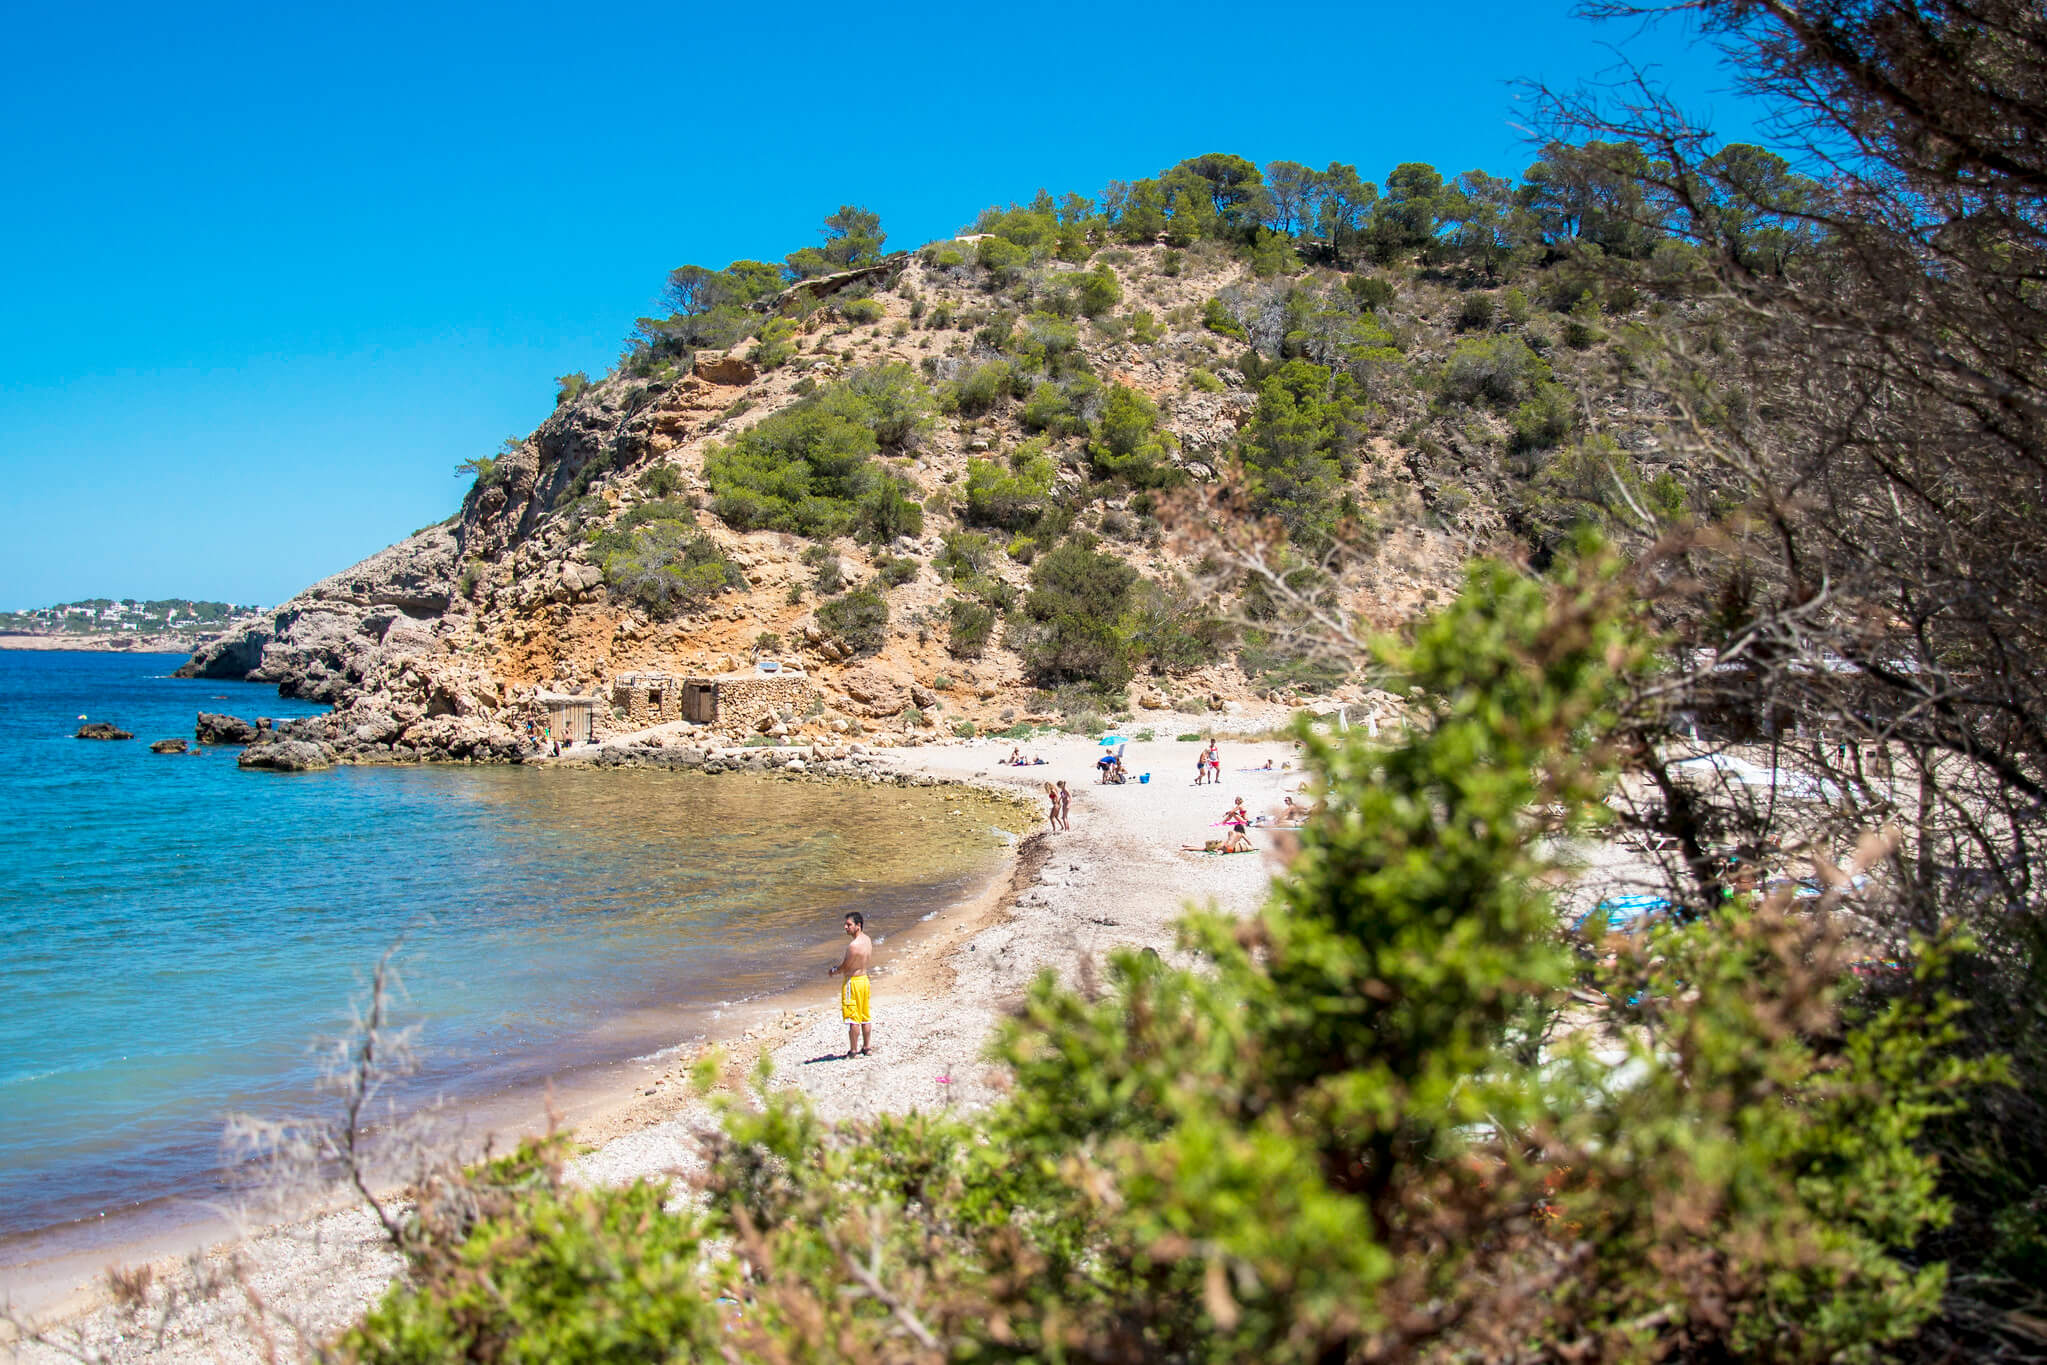 https://www.white-ibiza.com/wp-content/uploads/2020/03/ibiza-beaches-cala-moli-04.jpg